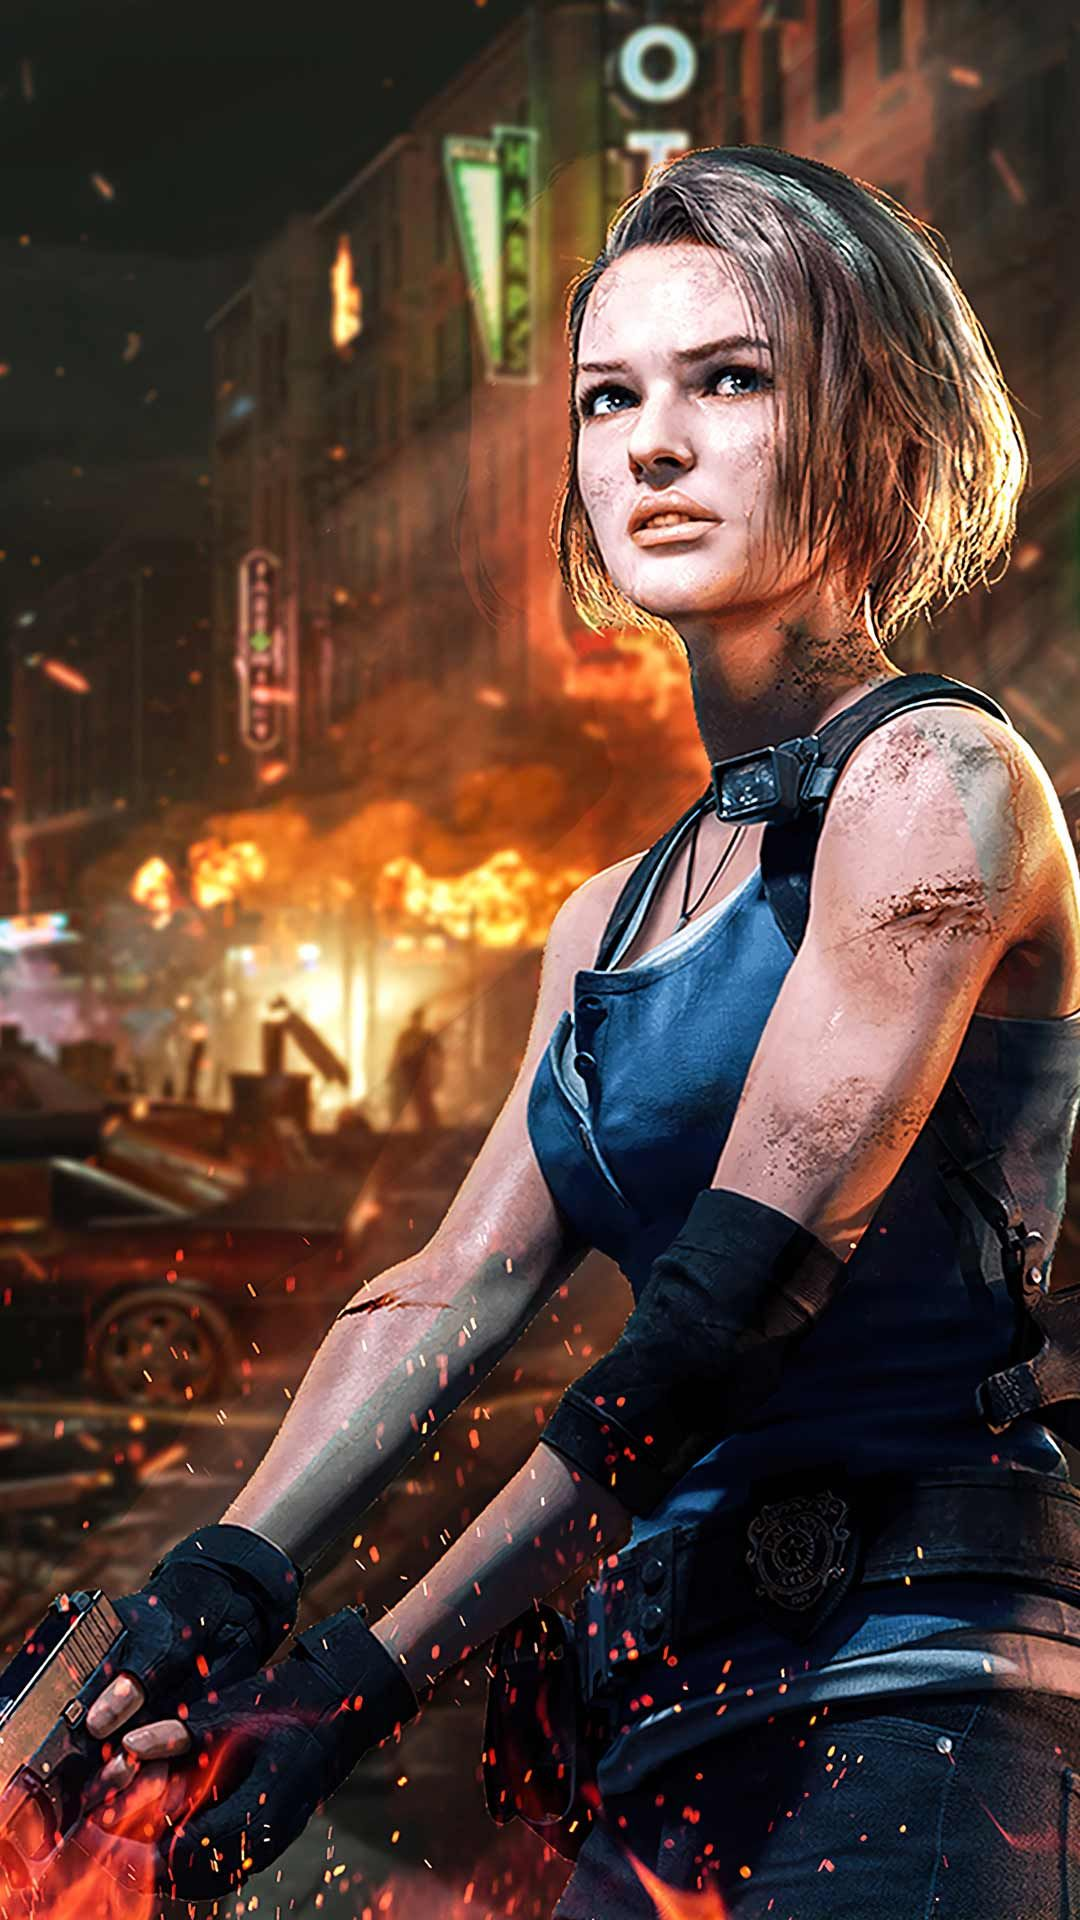 Get Some Resident Evil 3 Remake Character Jill Valentine Wallpapers Hd Images Art Screenshots R In 2020 Resident Evil Girl Resident Evil Collection Resident Evil Anime